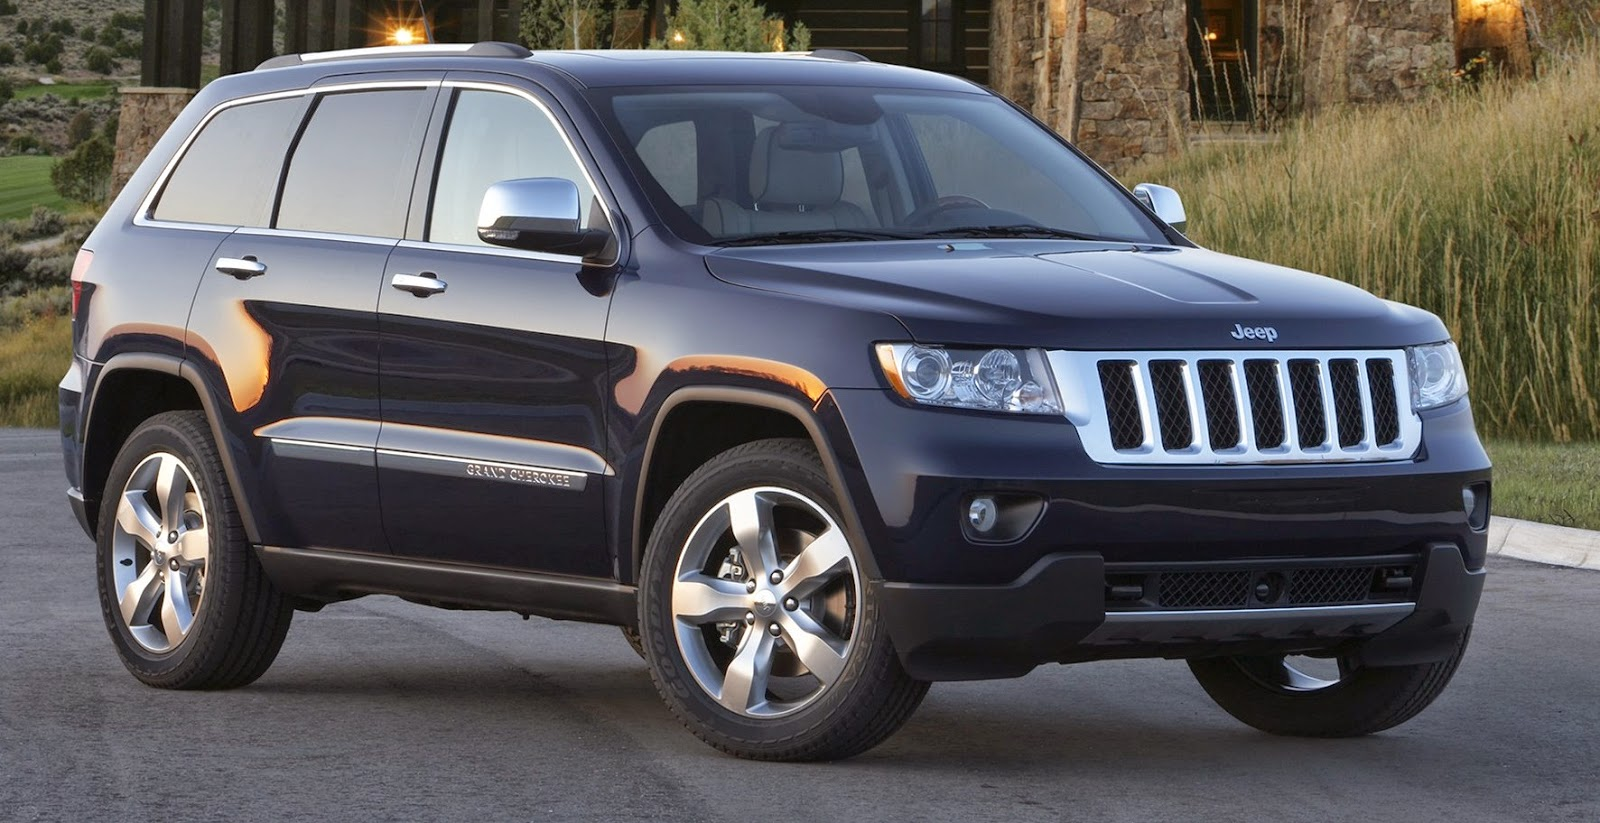 Owners Manual Jeep Grand Cherokee Owners Manual border=